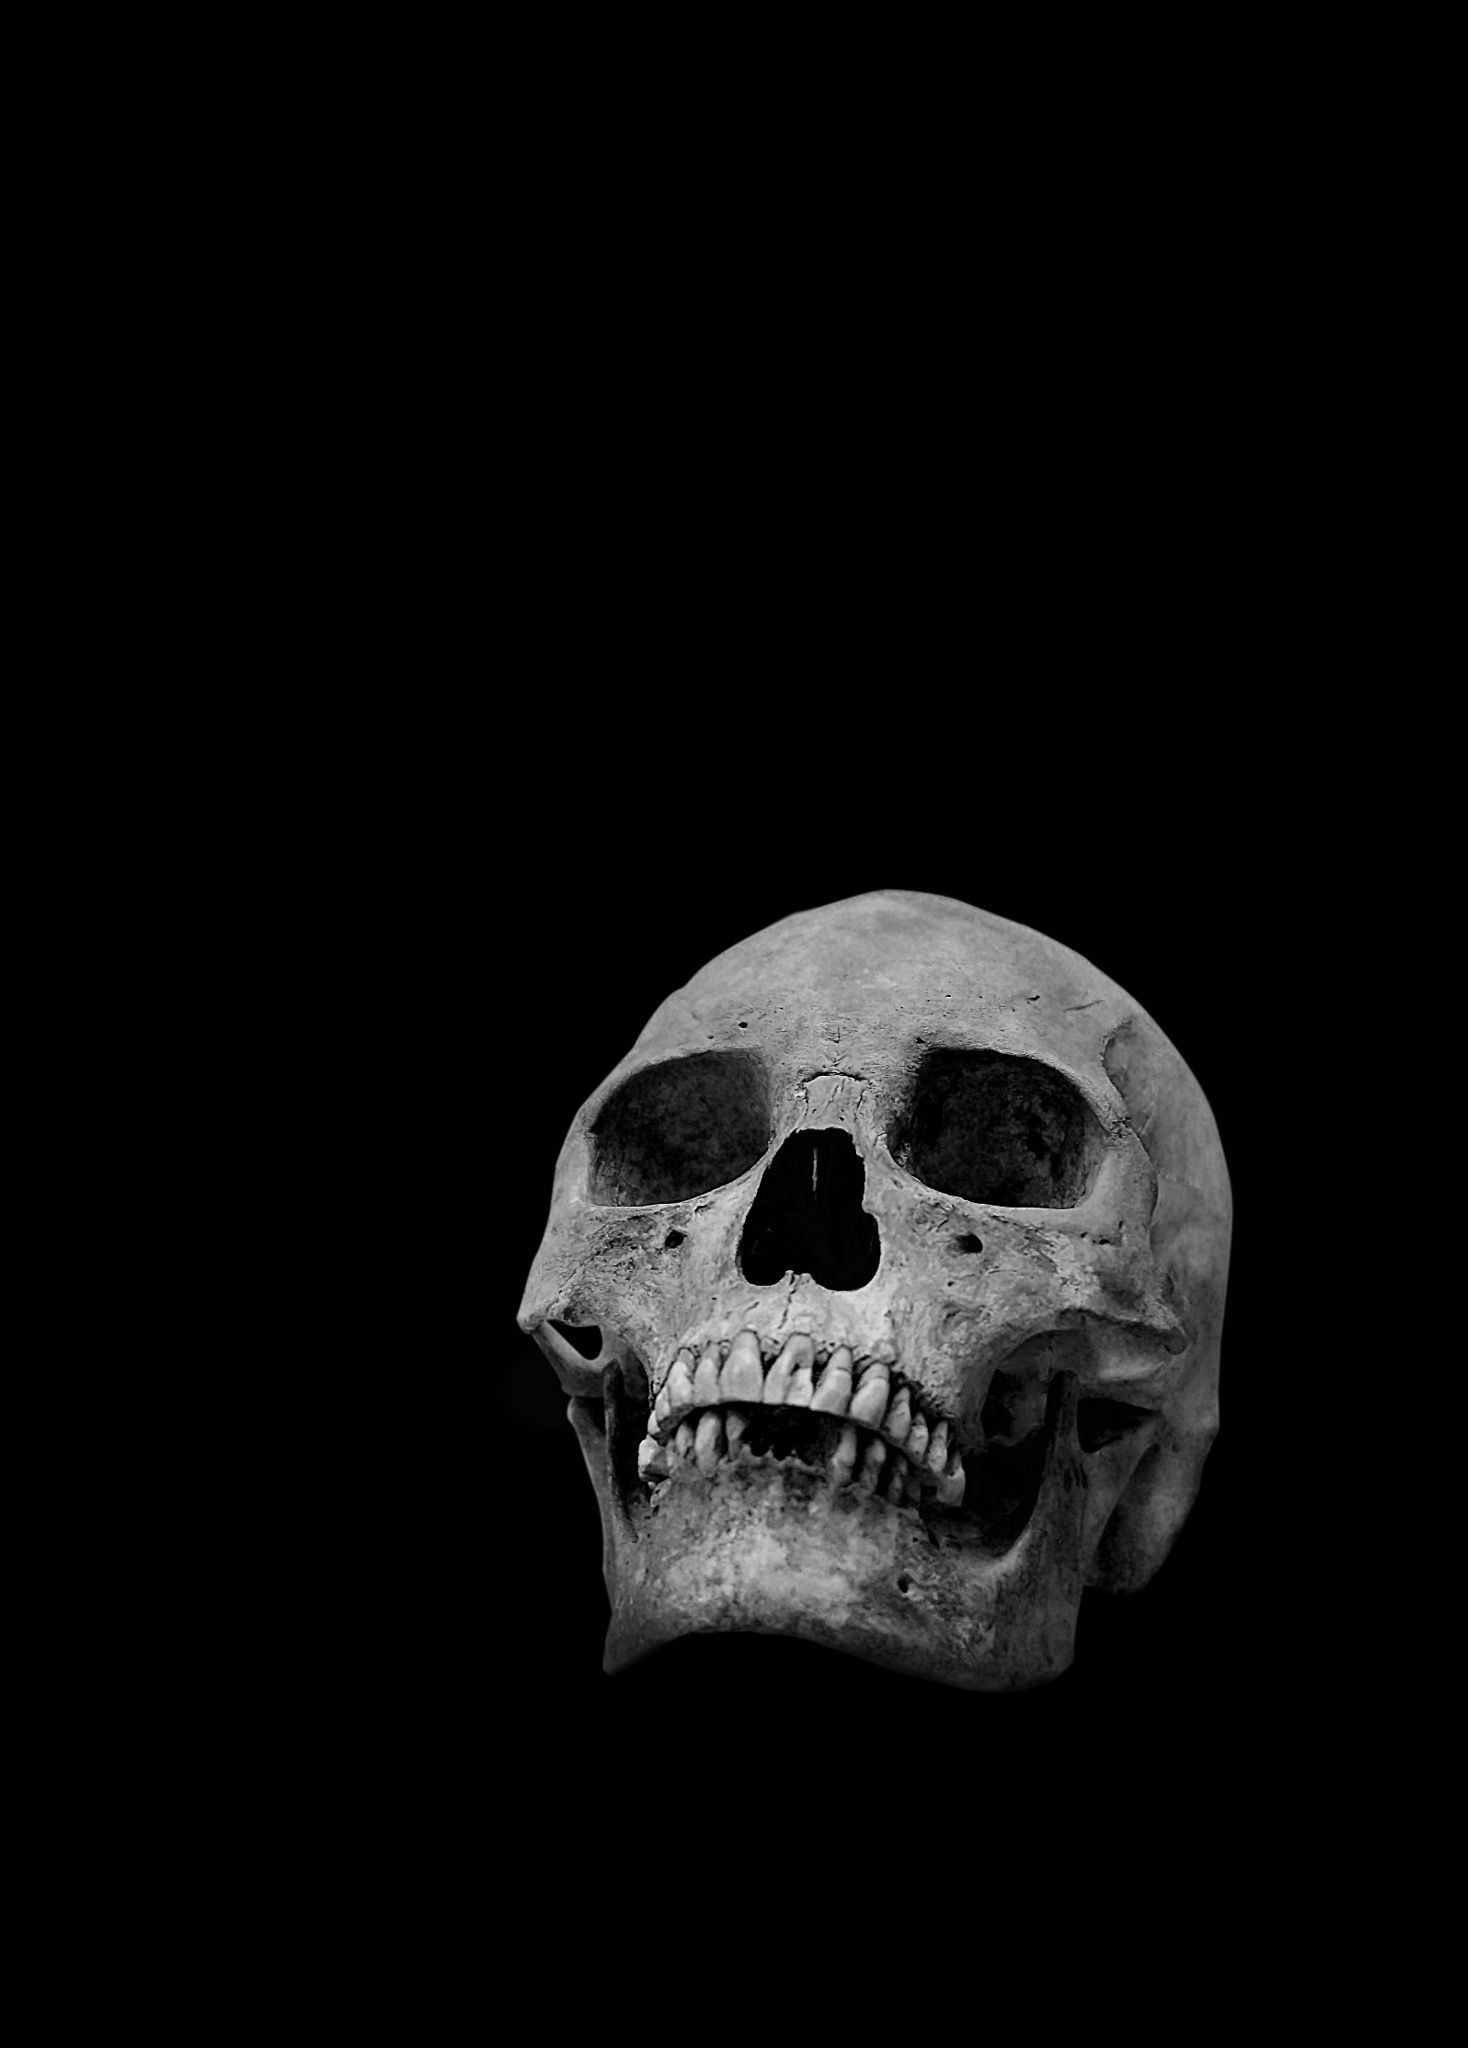 1468x2048 The human skull on a black background in black and white.